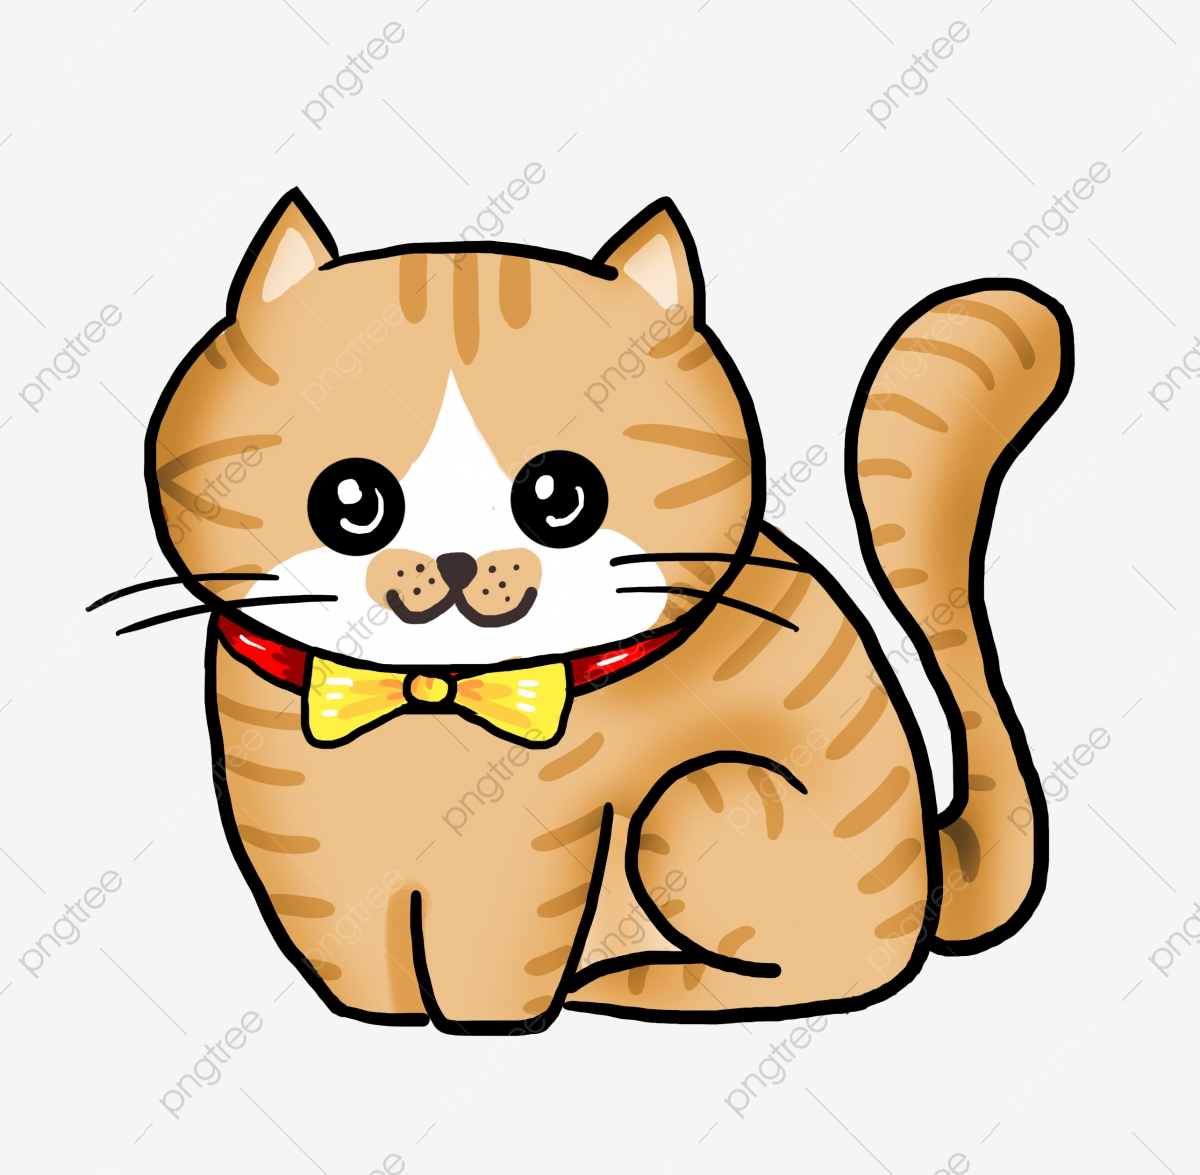 Free Images Of Cat, Download Free Clip Art, Free Clip Art on Clipart Library